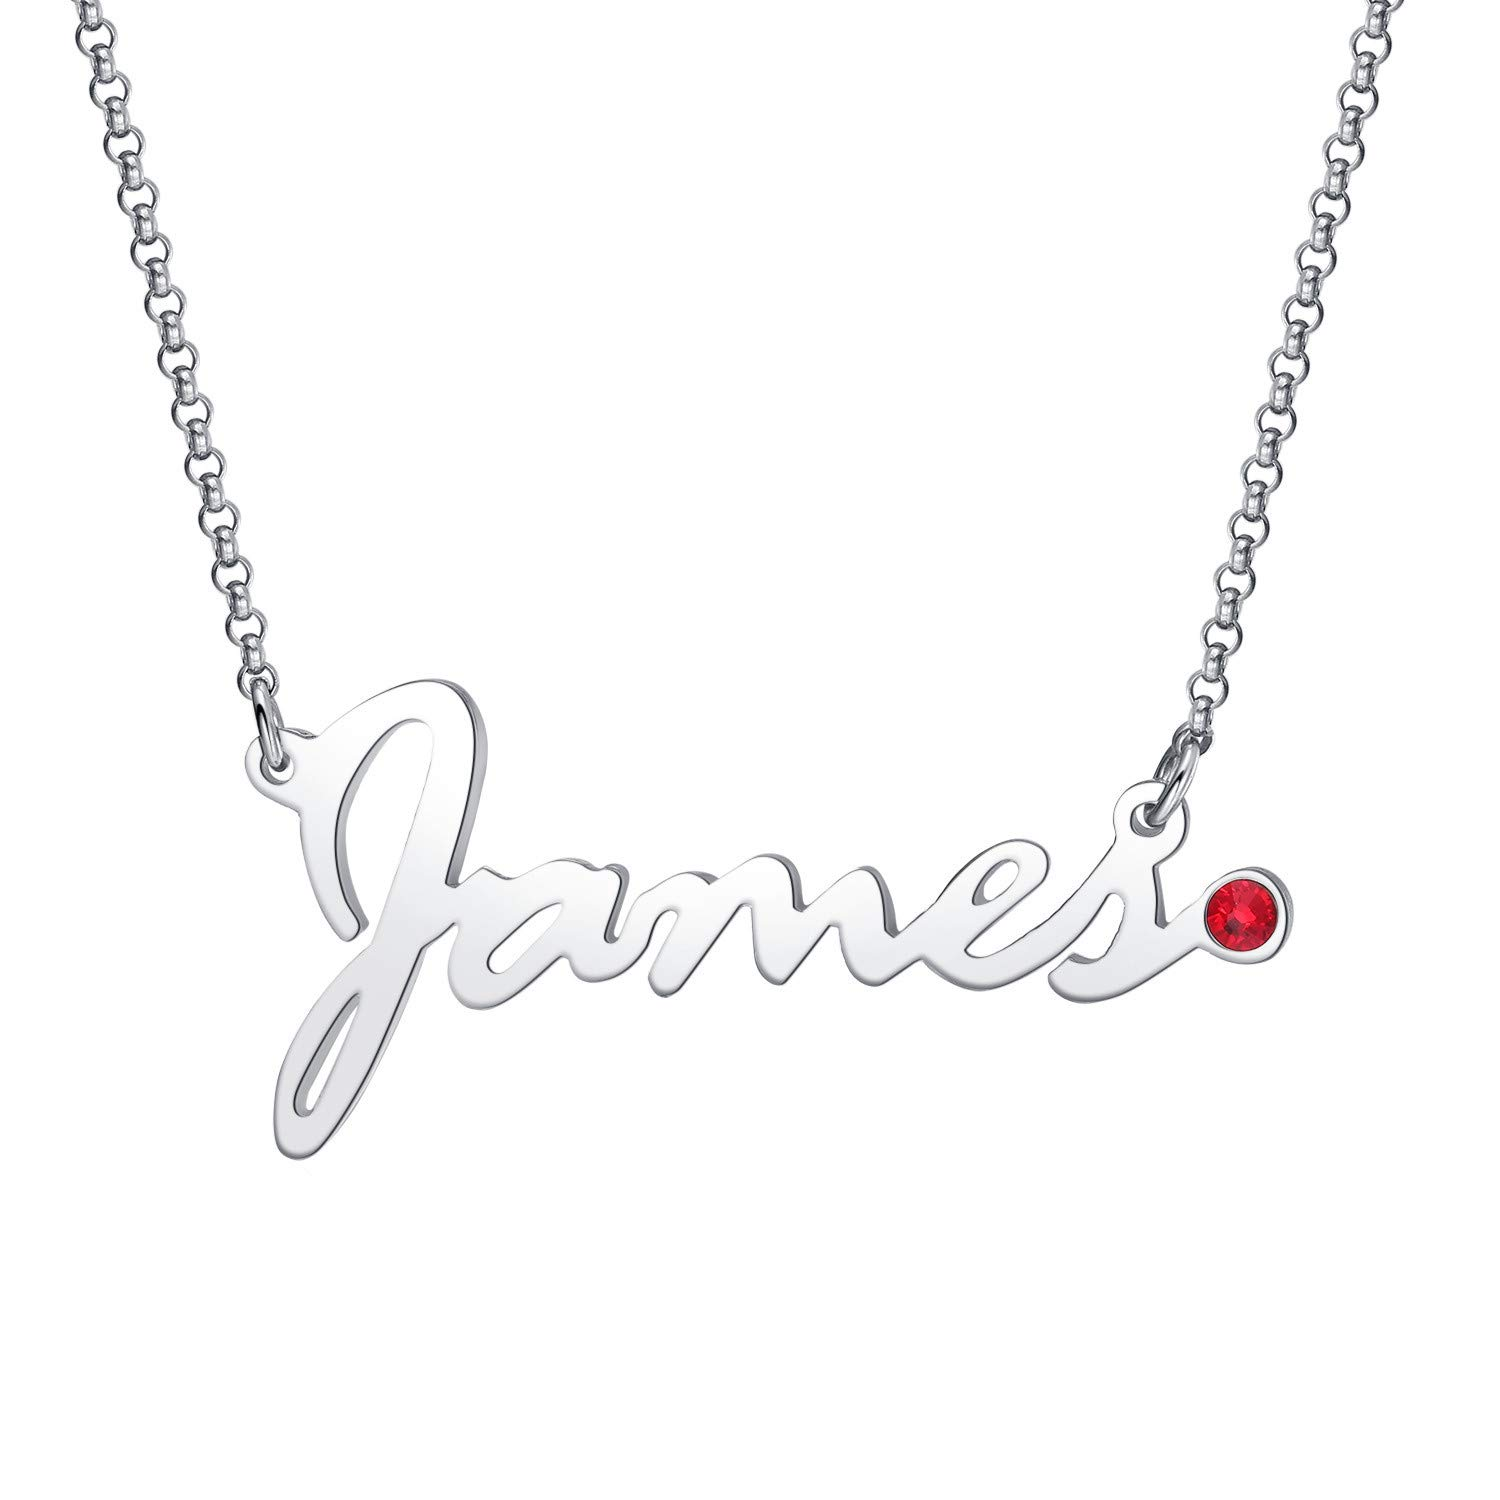 ef3375701c131 Amazon.com: MissNity 925 Sterling Silver Personalized Name Necklaces ...